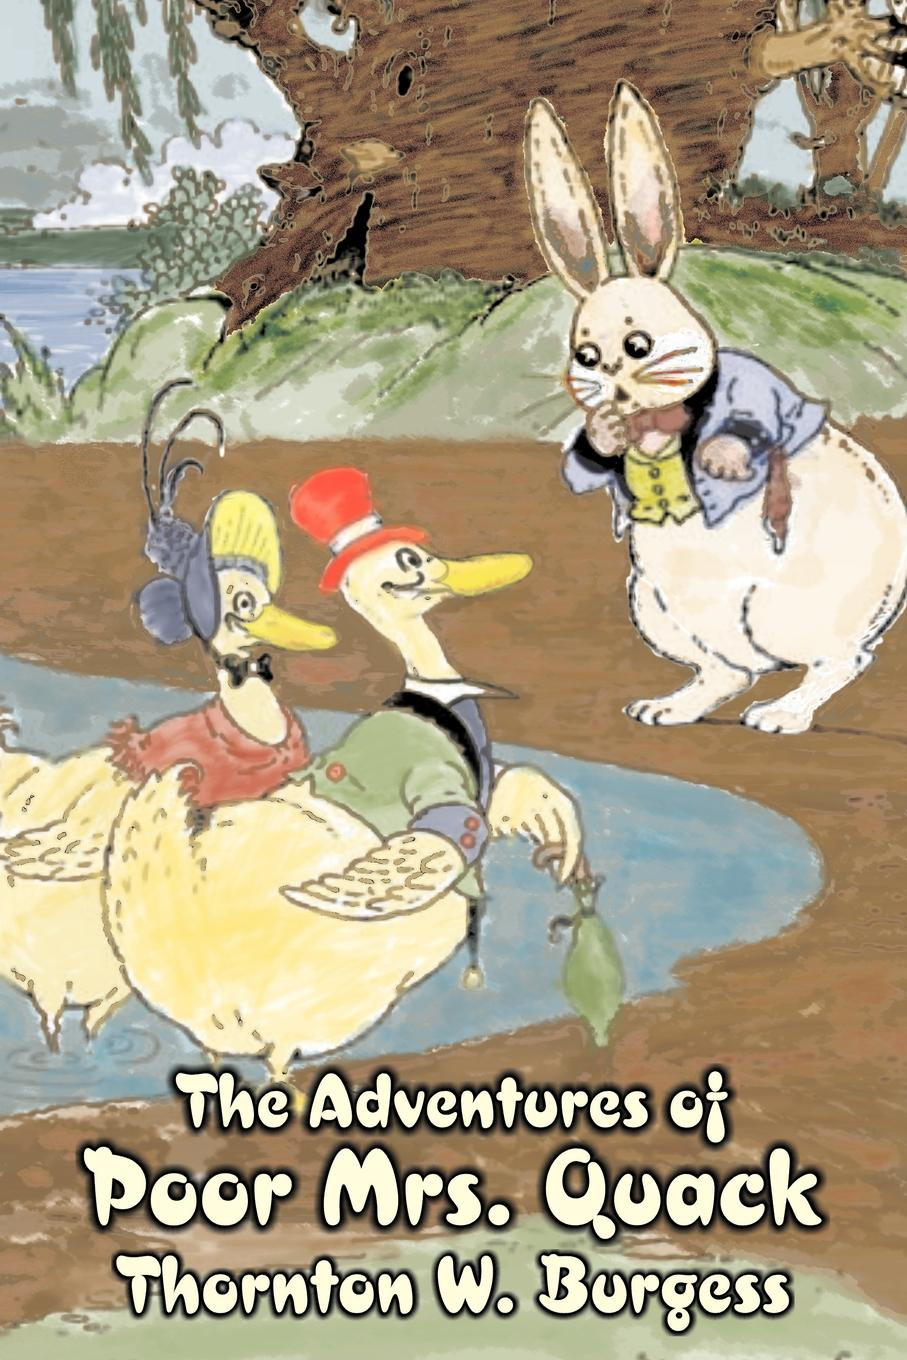 Thornton W. Burgess The Adventures of Poor Mrs. Quack by Thornton Burgess, Fiction, Animals, Fantasy & Magic